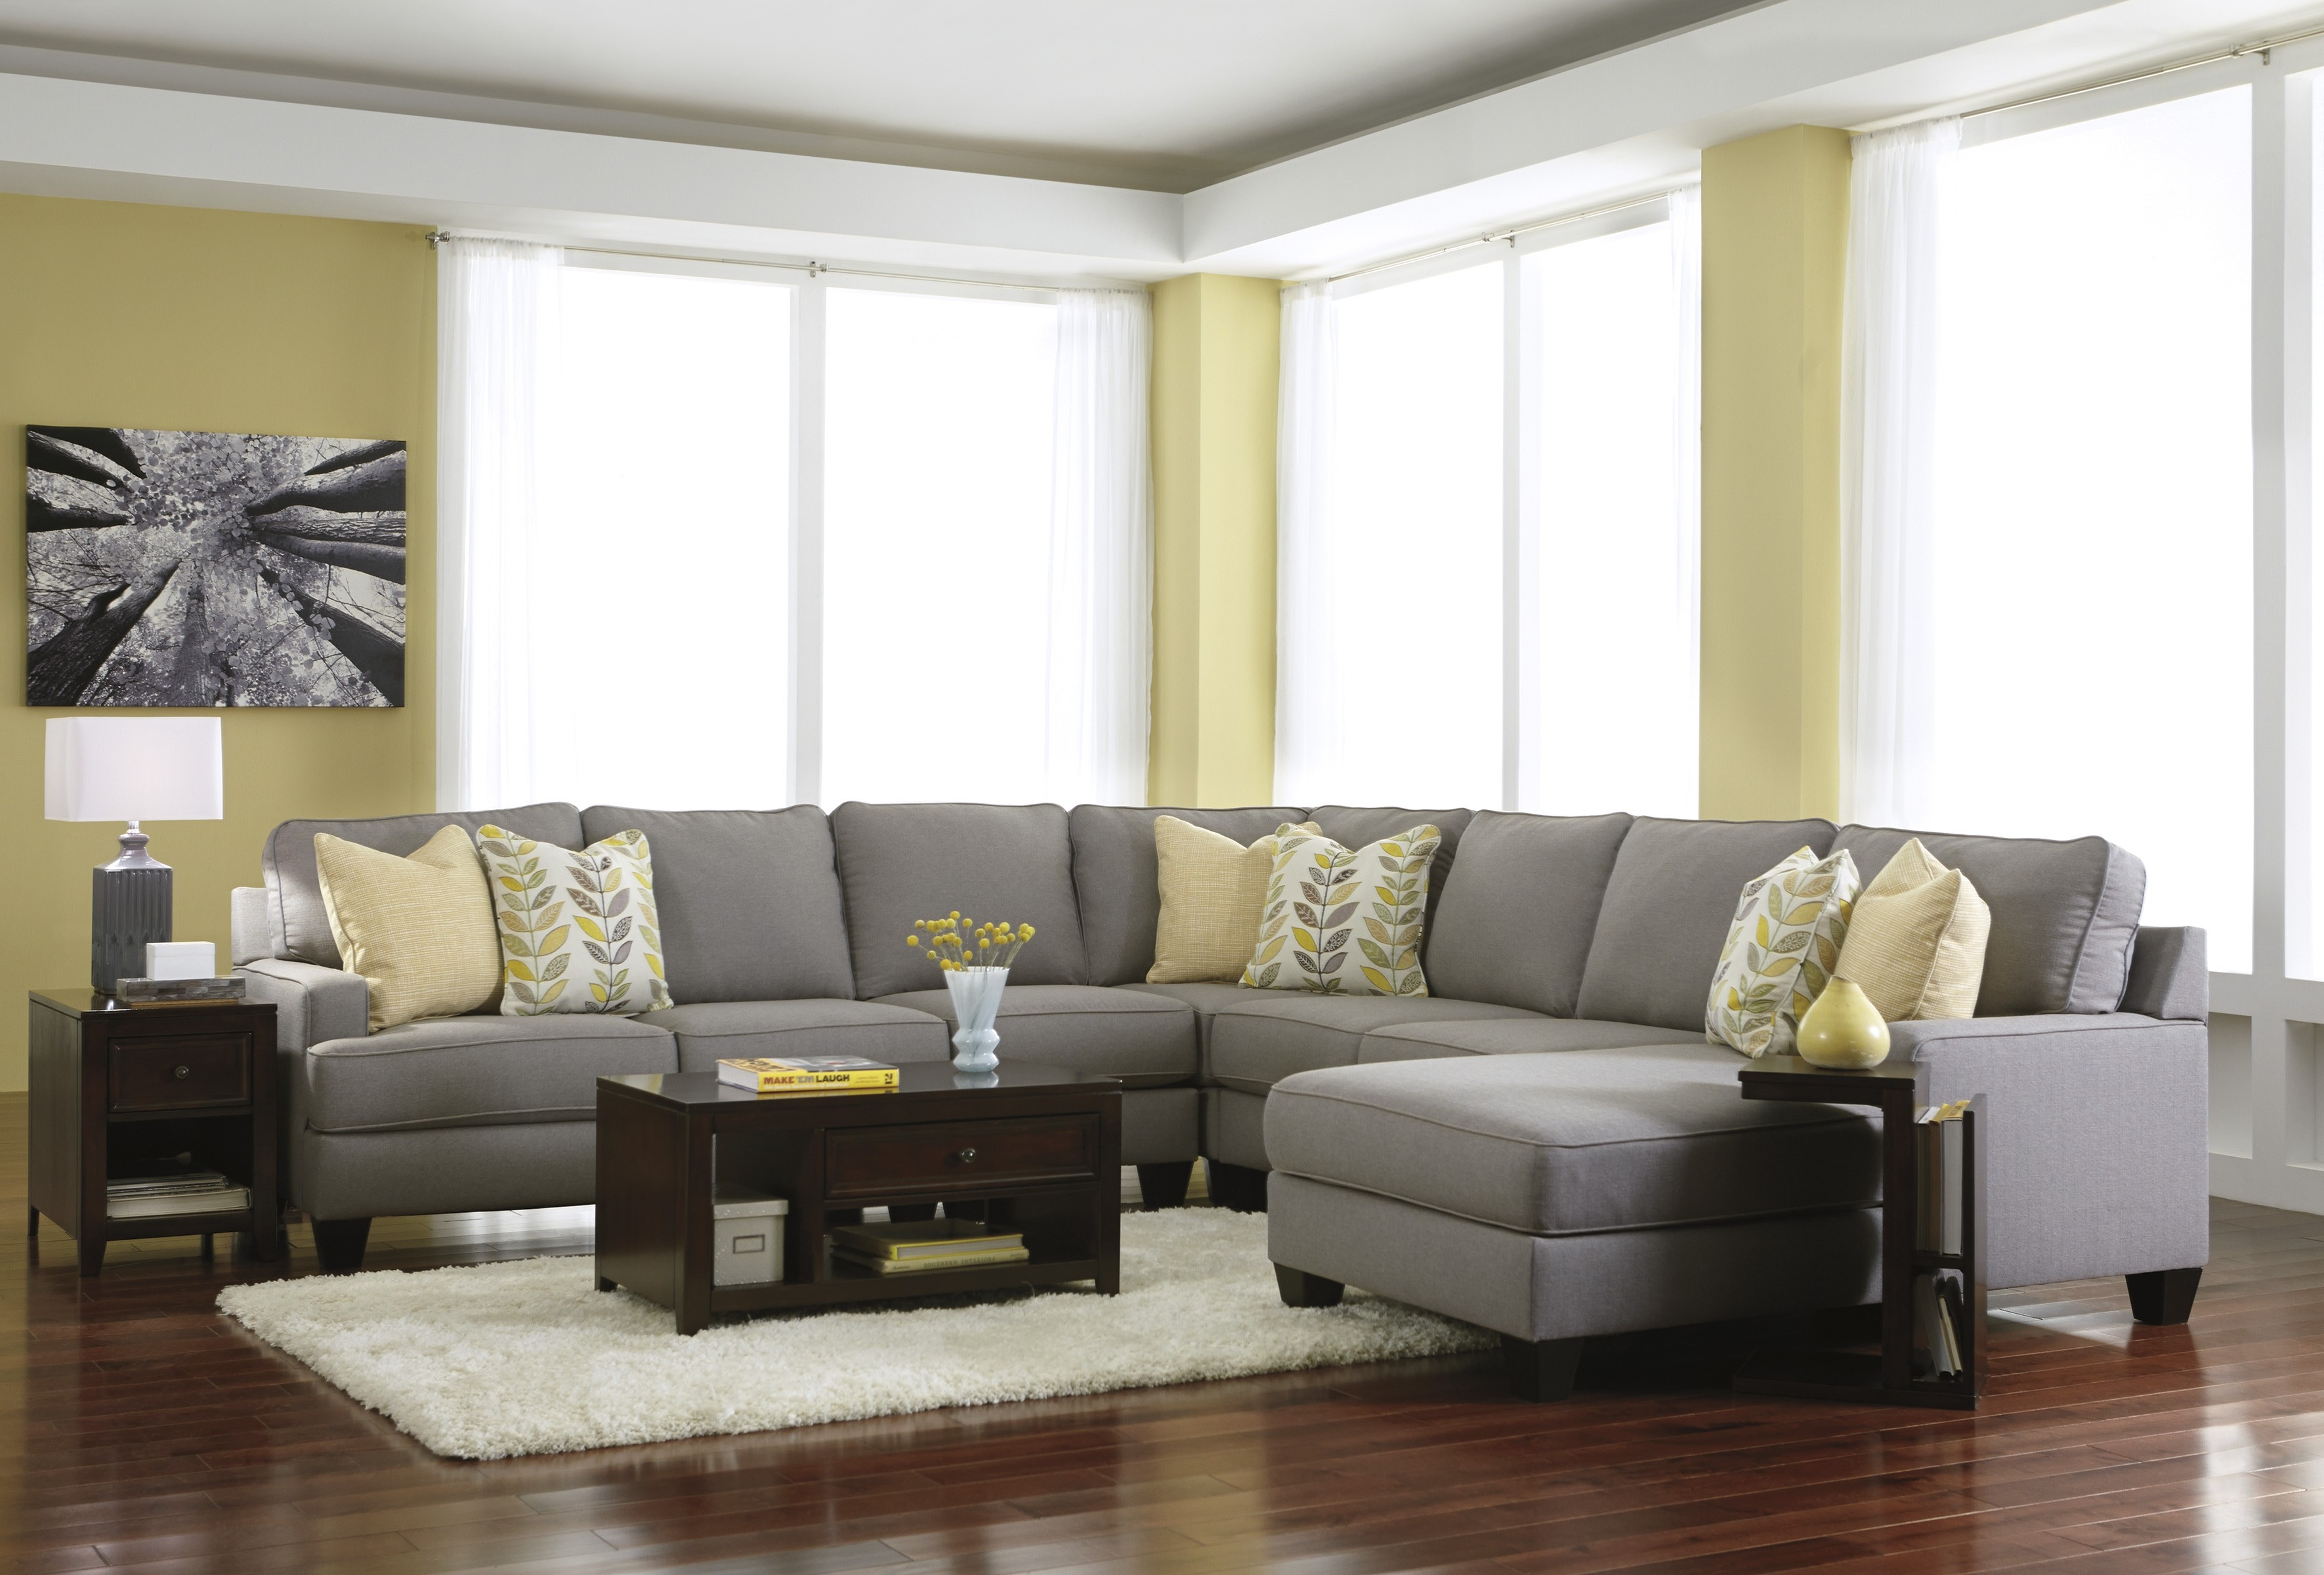 Good Sectional Sofas Houston 56 For Your Modern Sofa Ideas with Sectional Sofas Houston